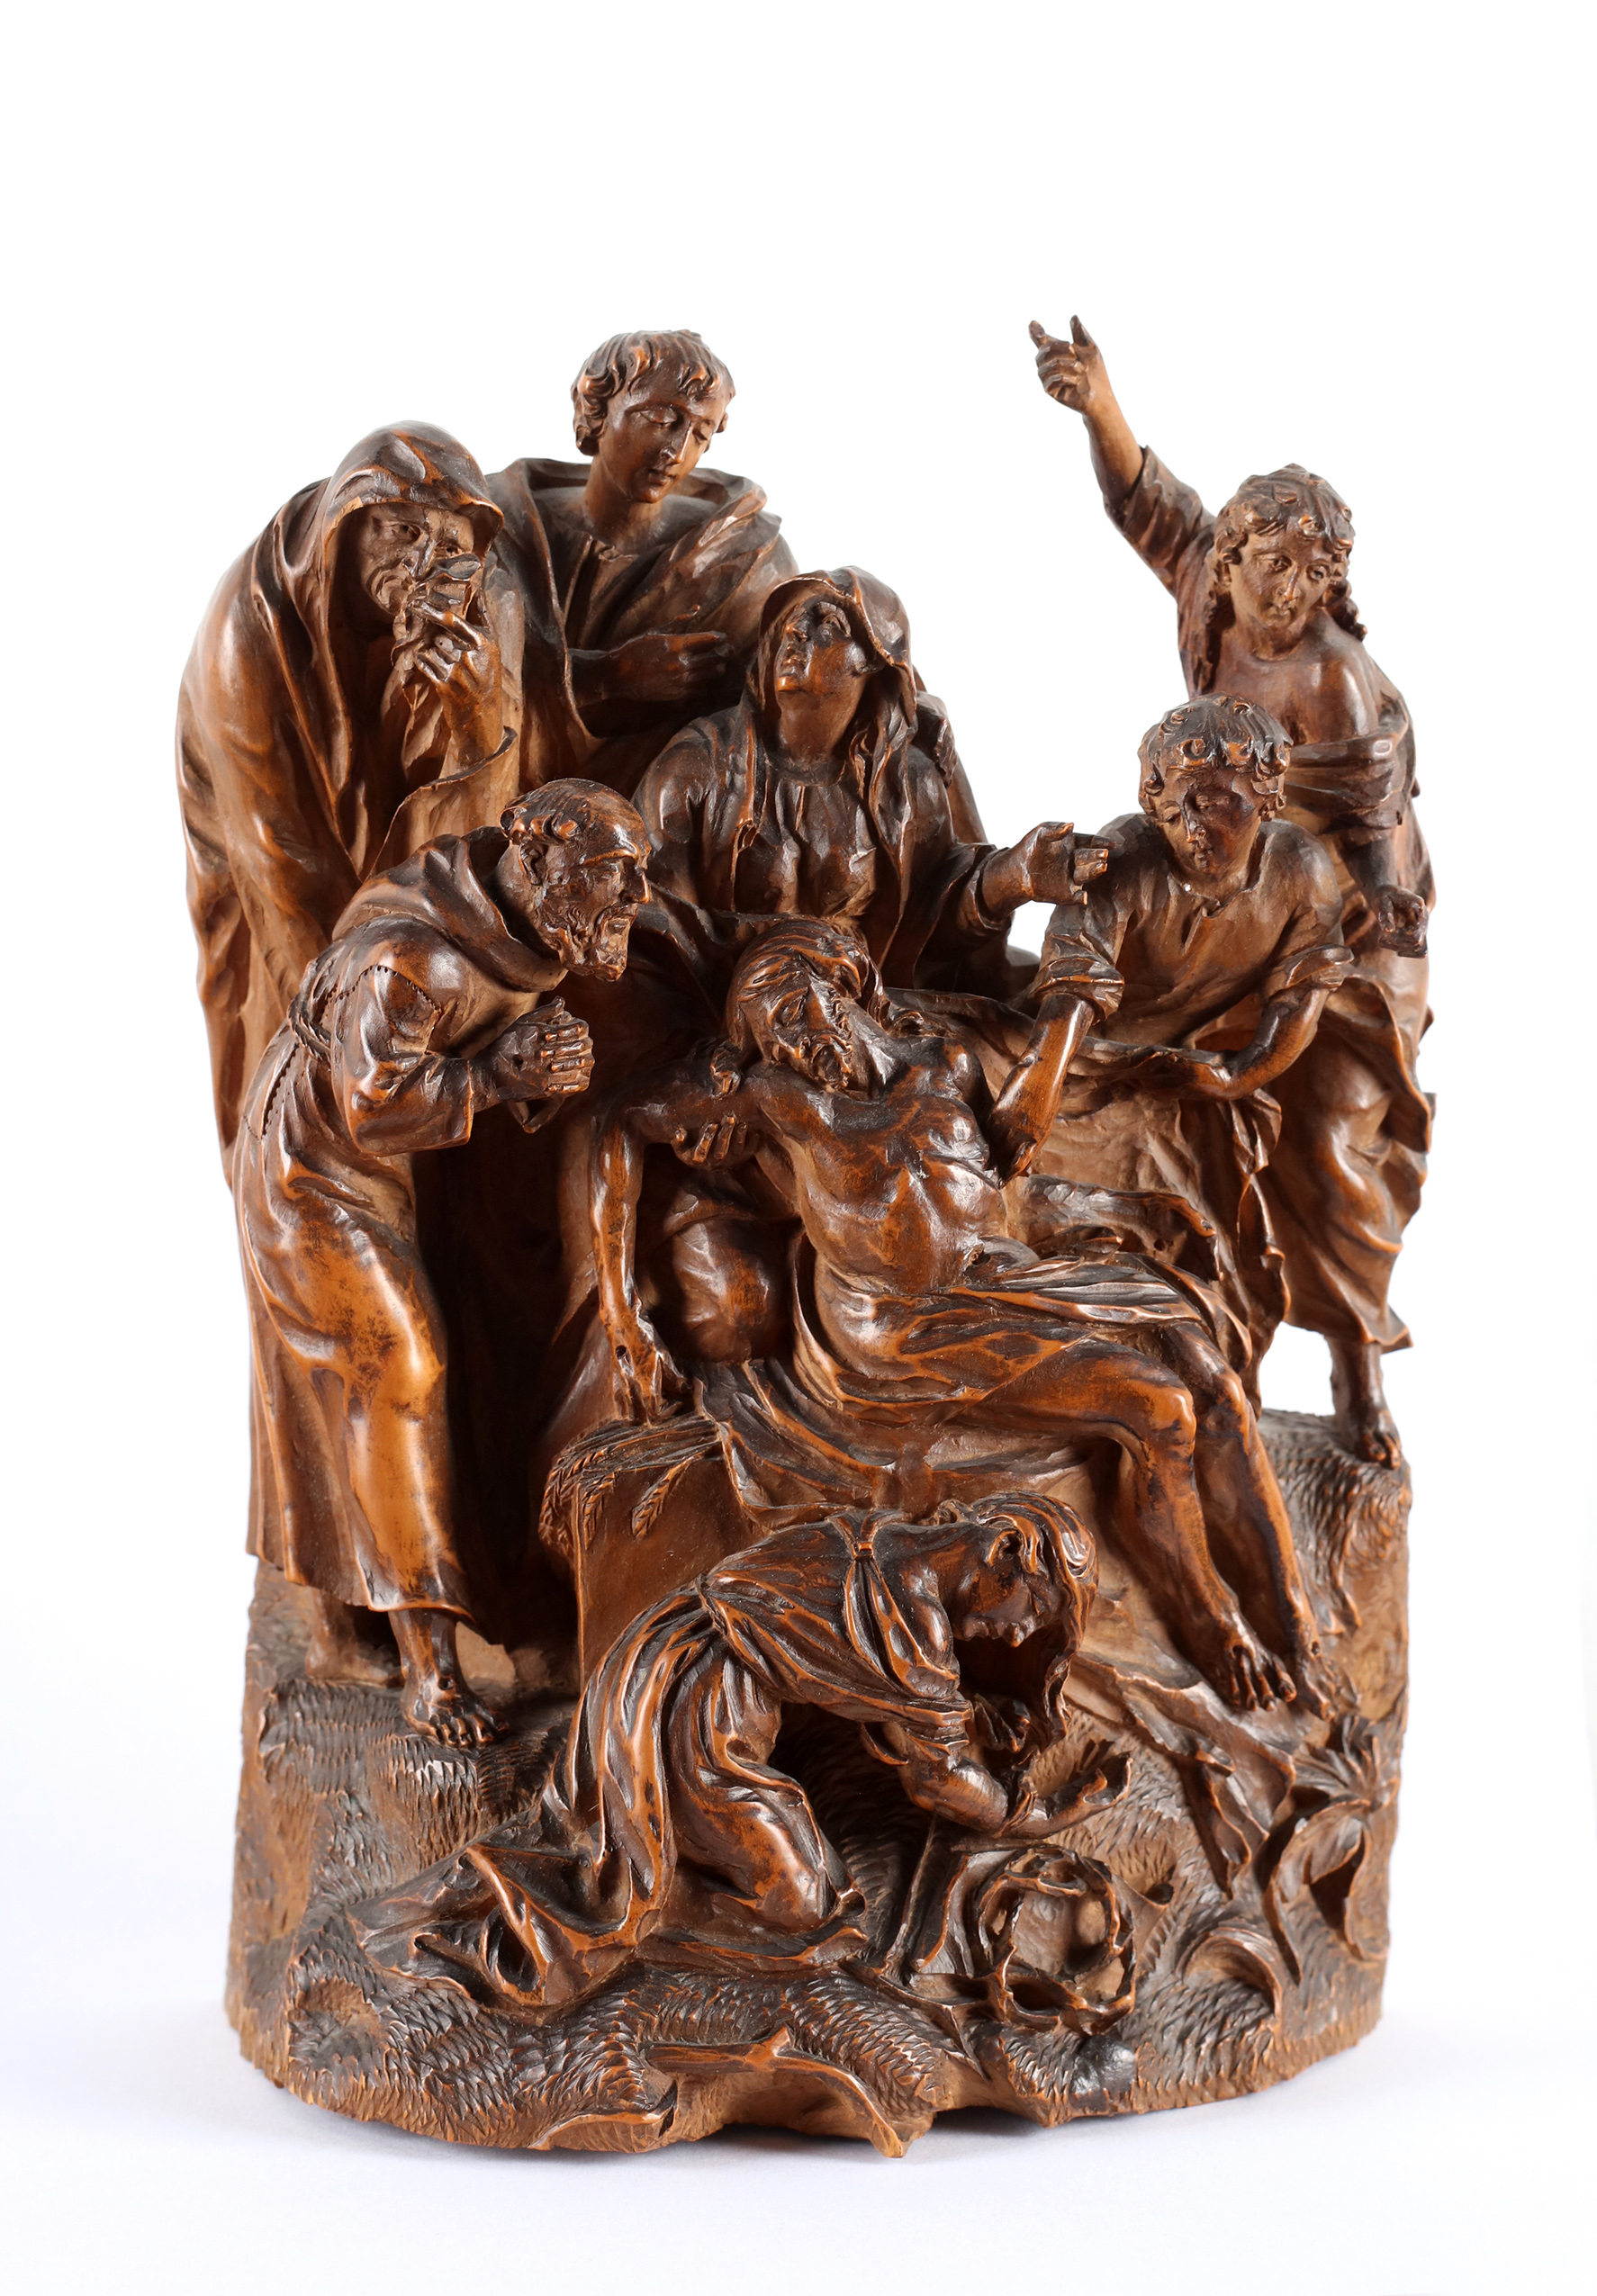 A group representing the Lamentation of Christ